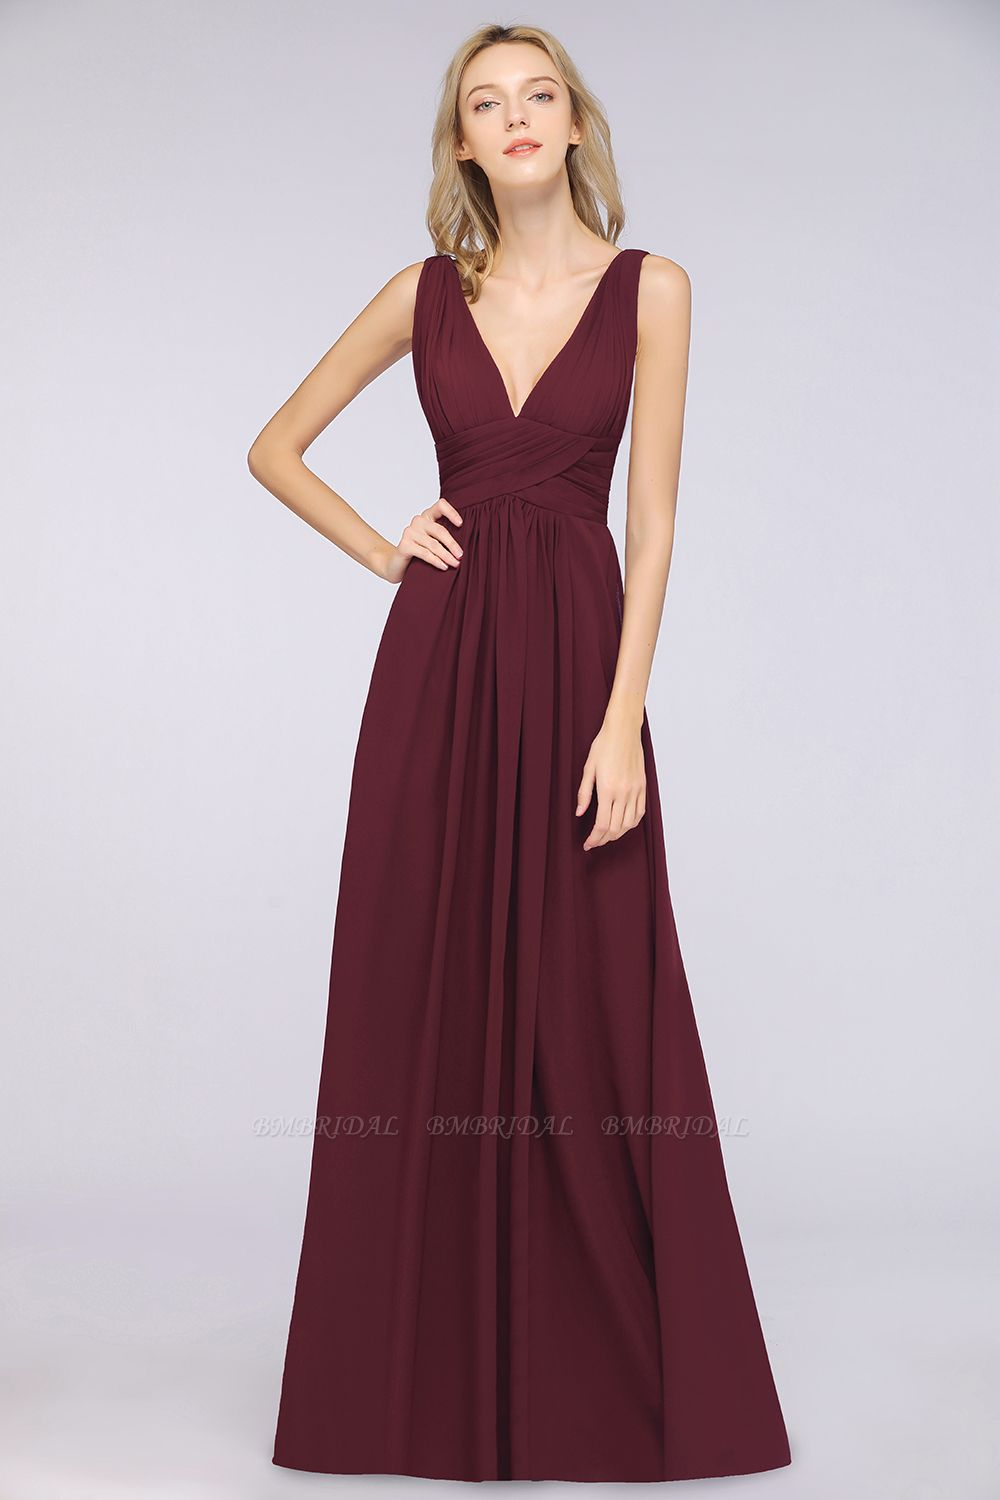 Elegant V-Neck Burgundy Chiffon Cheap Bridesmaid Dress with Ruffle